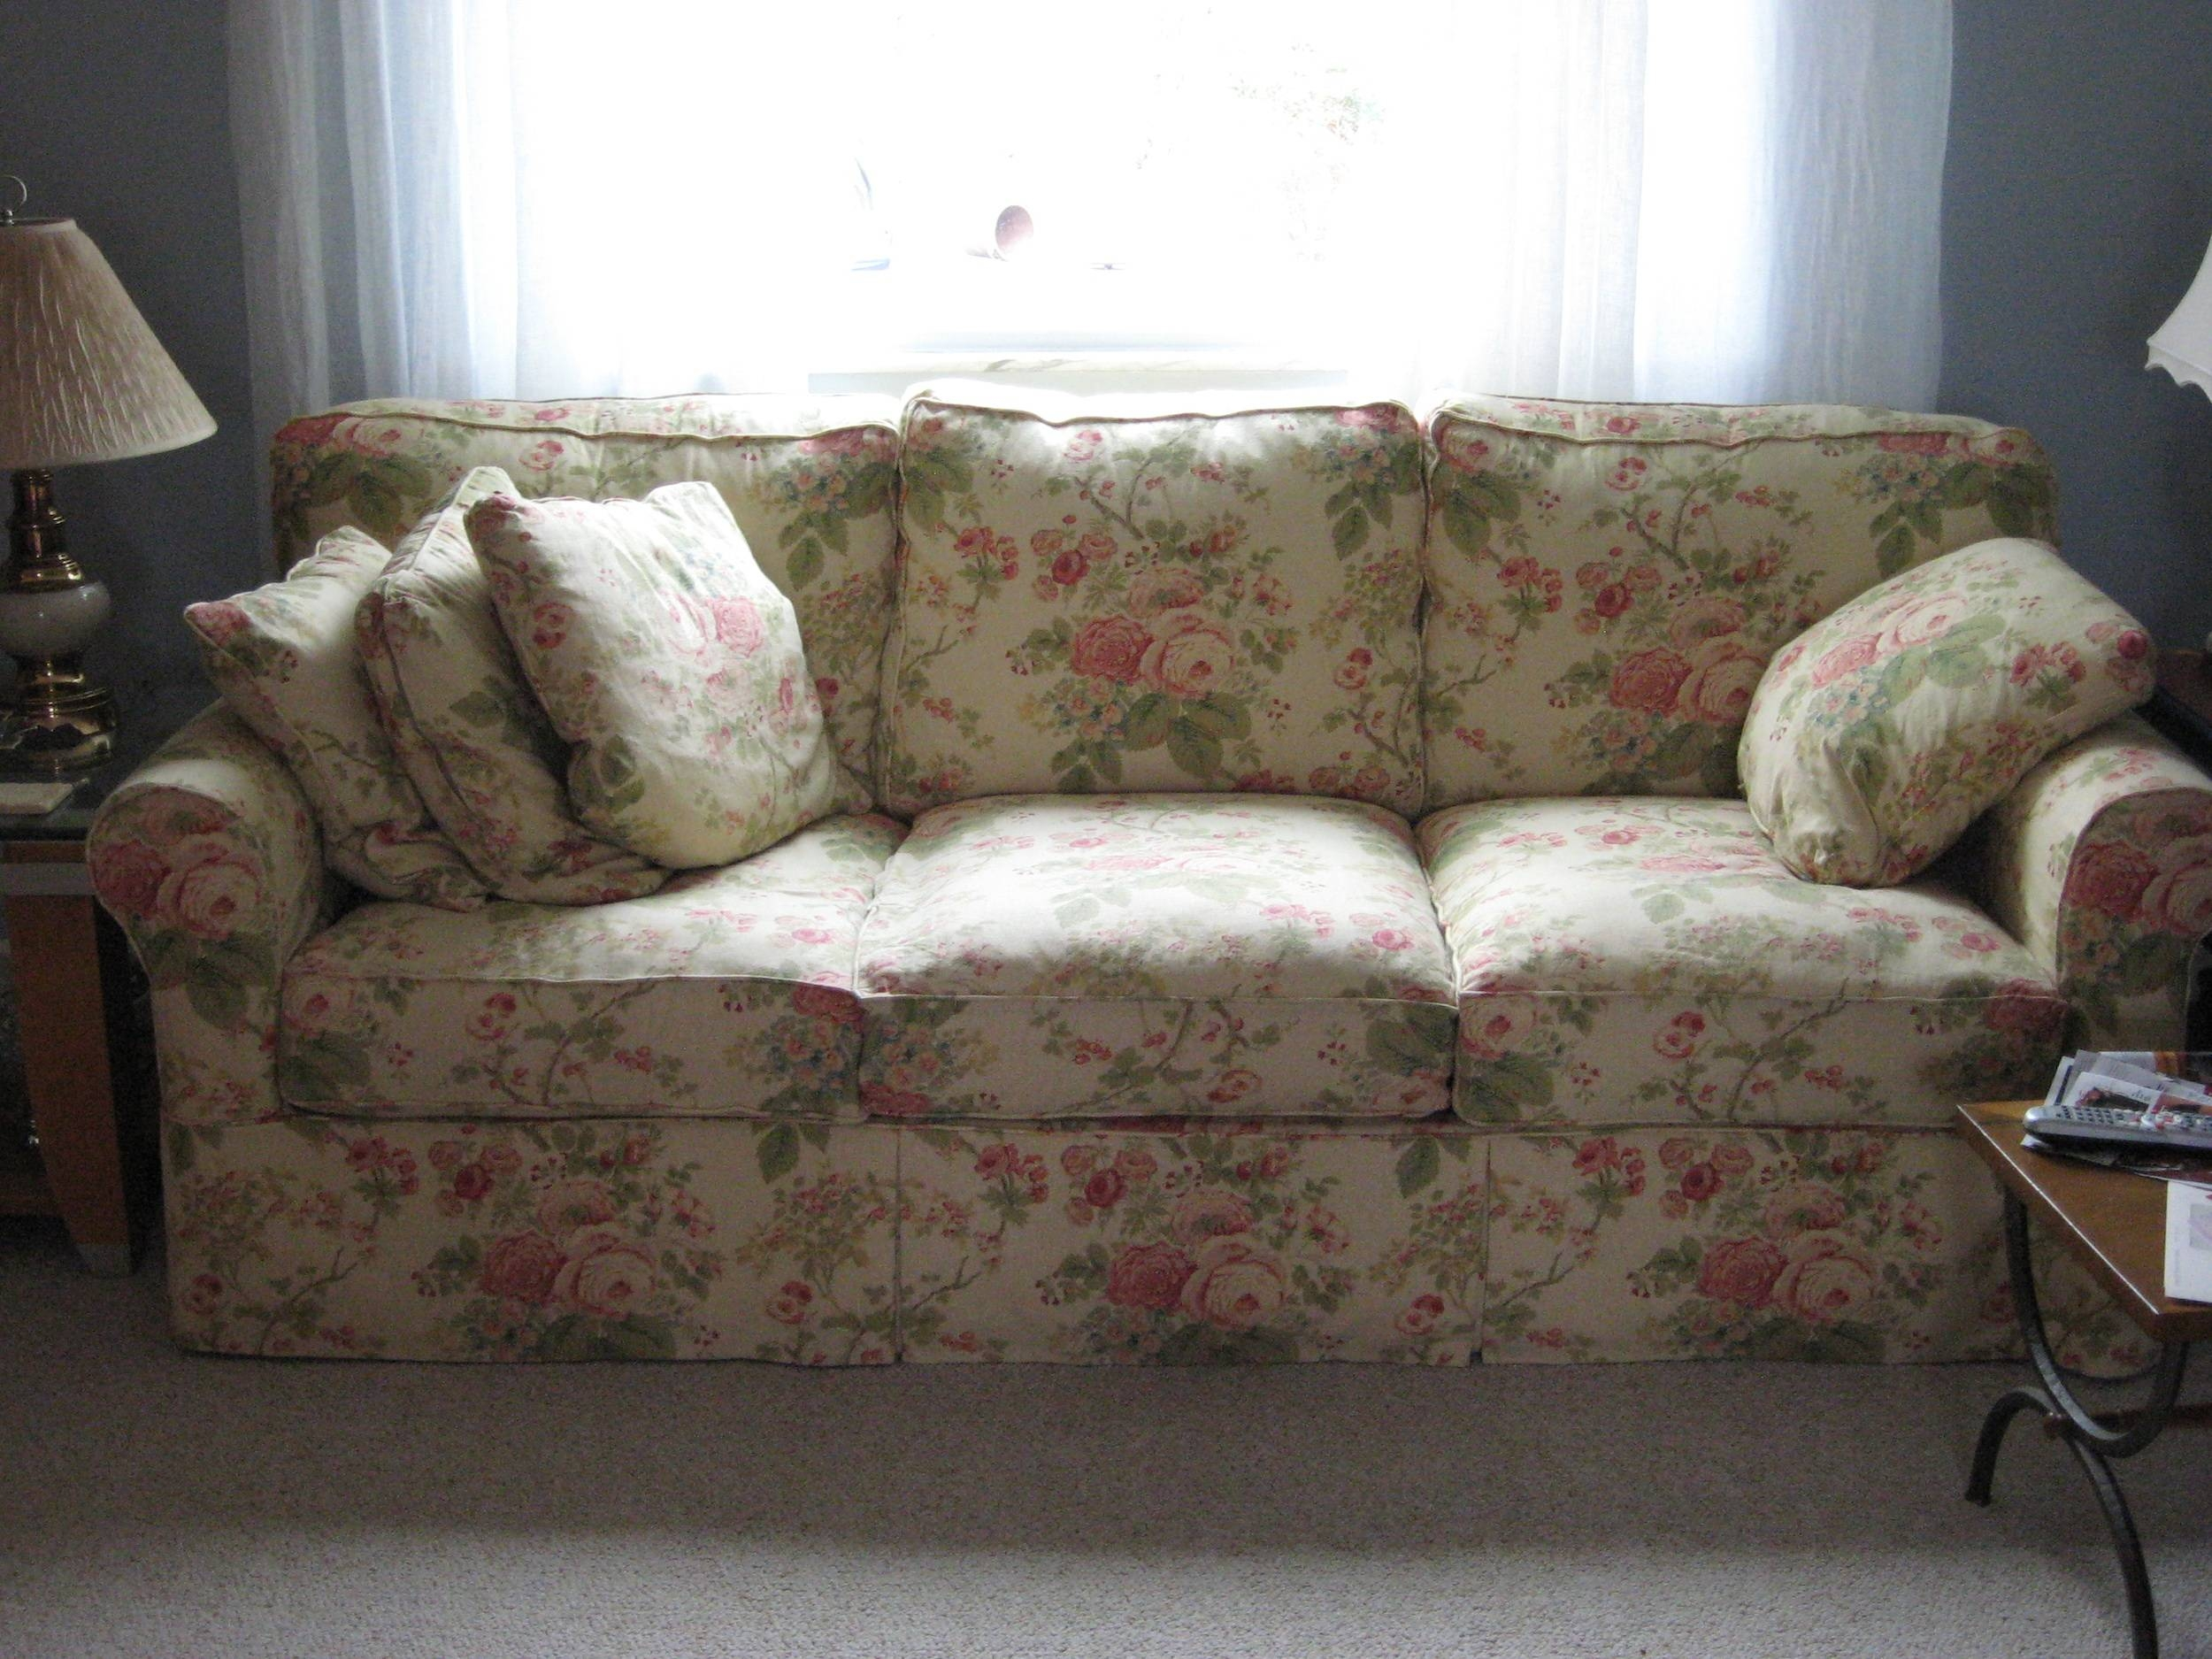 Floral Sofas | Sofas Decoration regarding Floral Sofas And Chairs (Image 11 of 15)